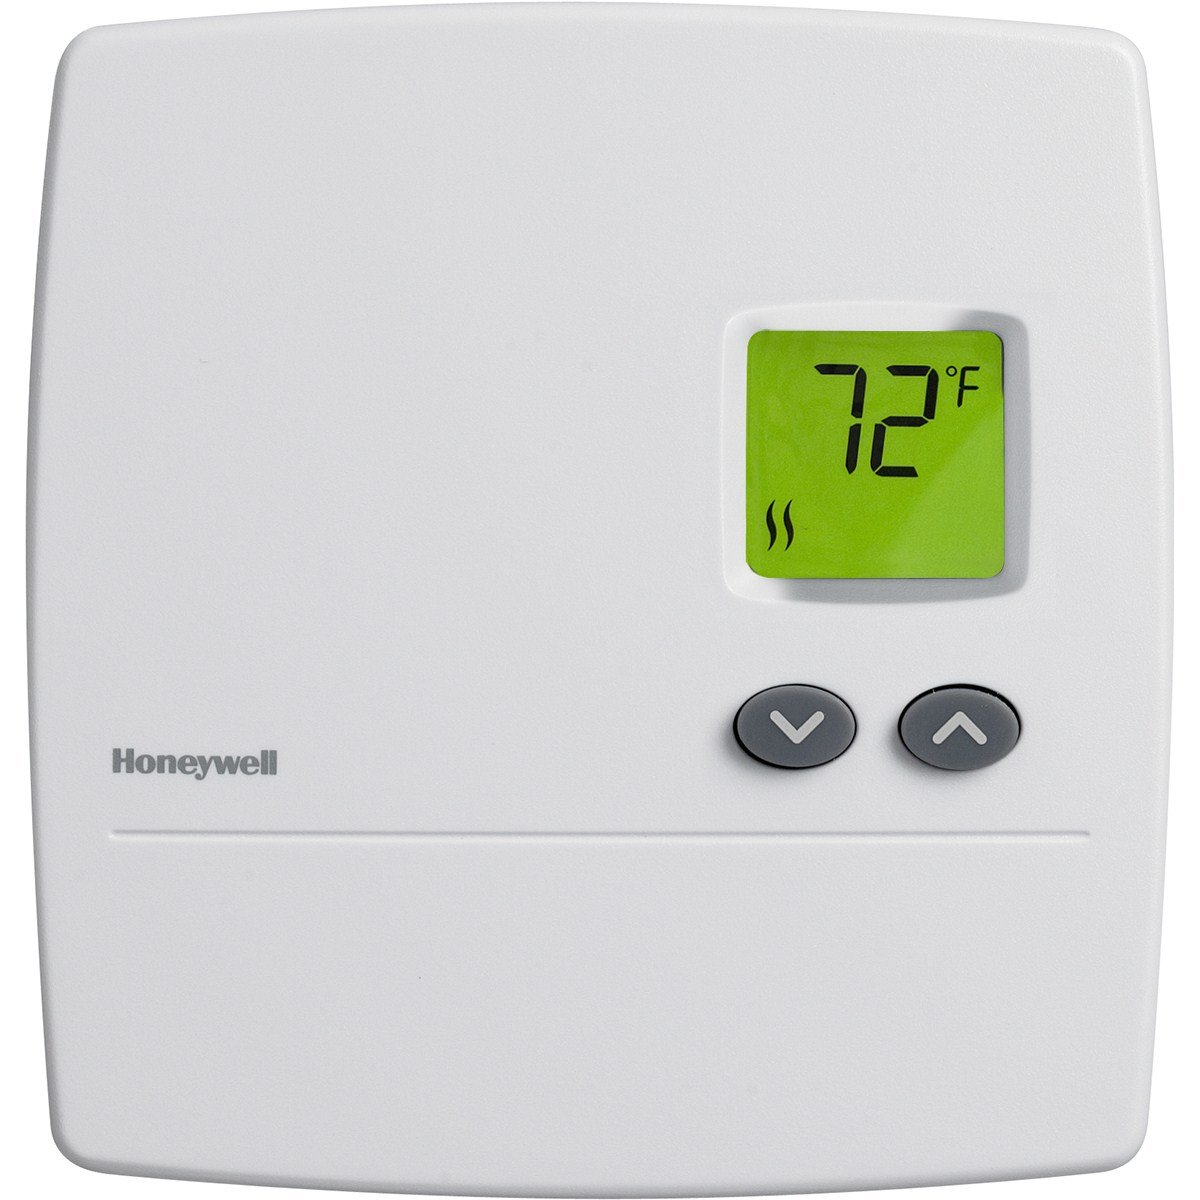 Honeywell Rlv3100a1017 E Non Programmable Thermostat For